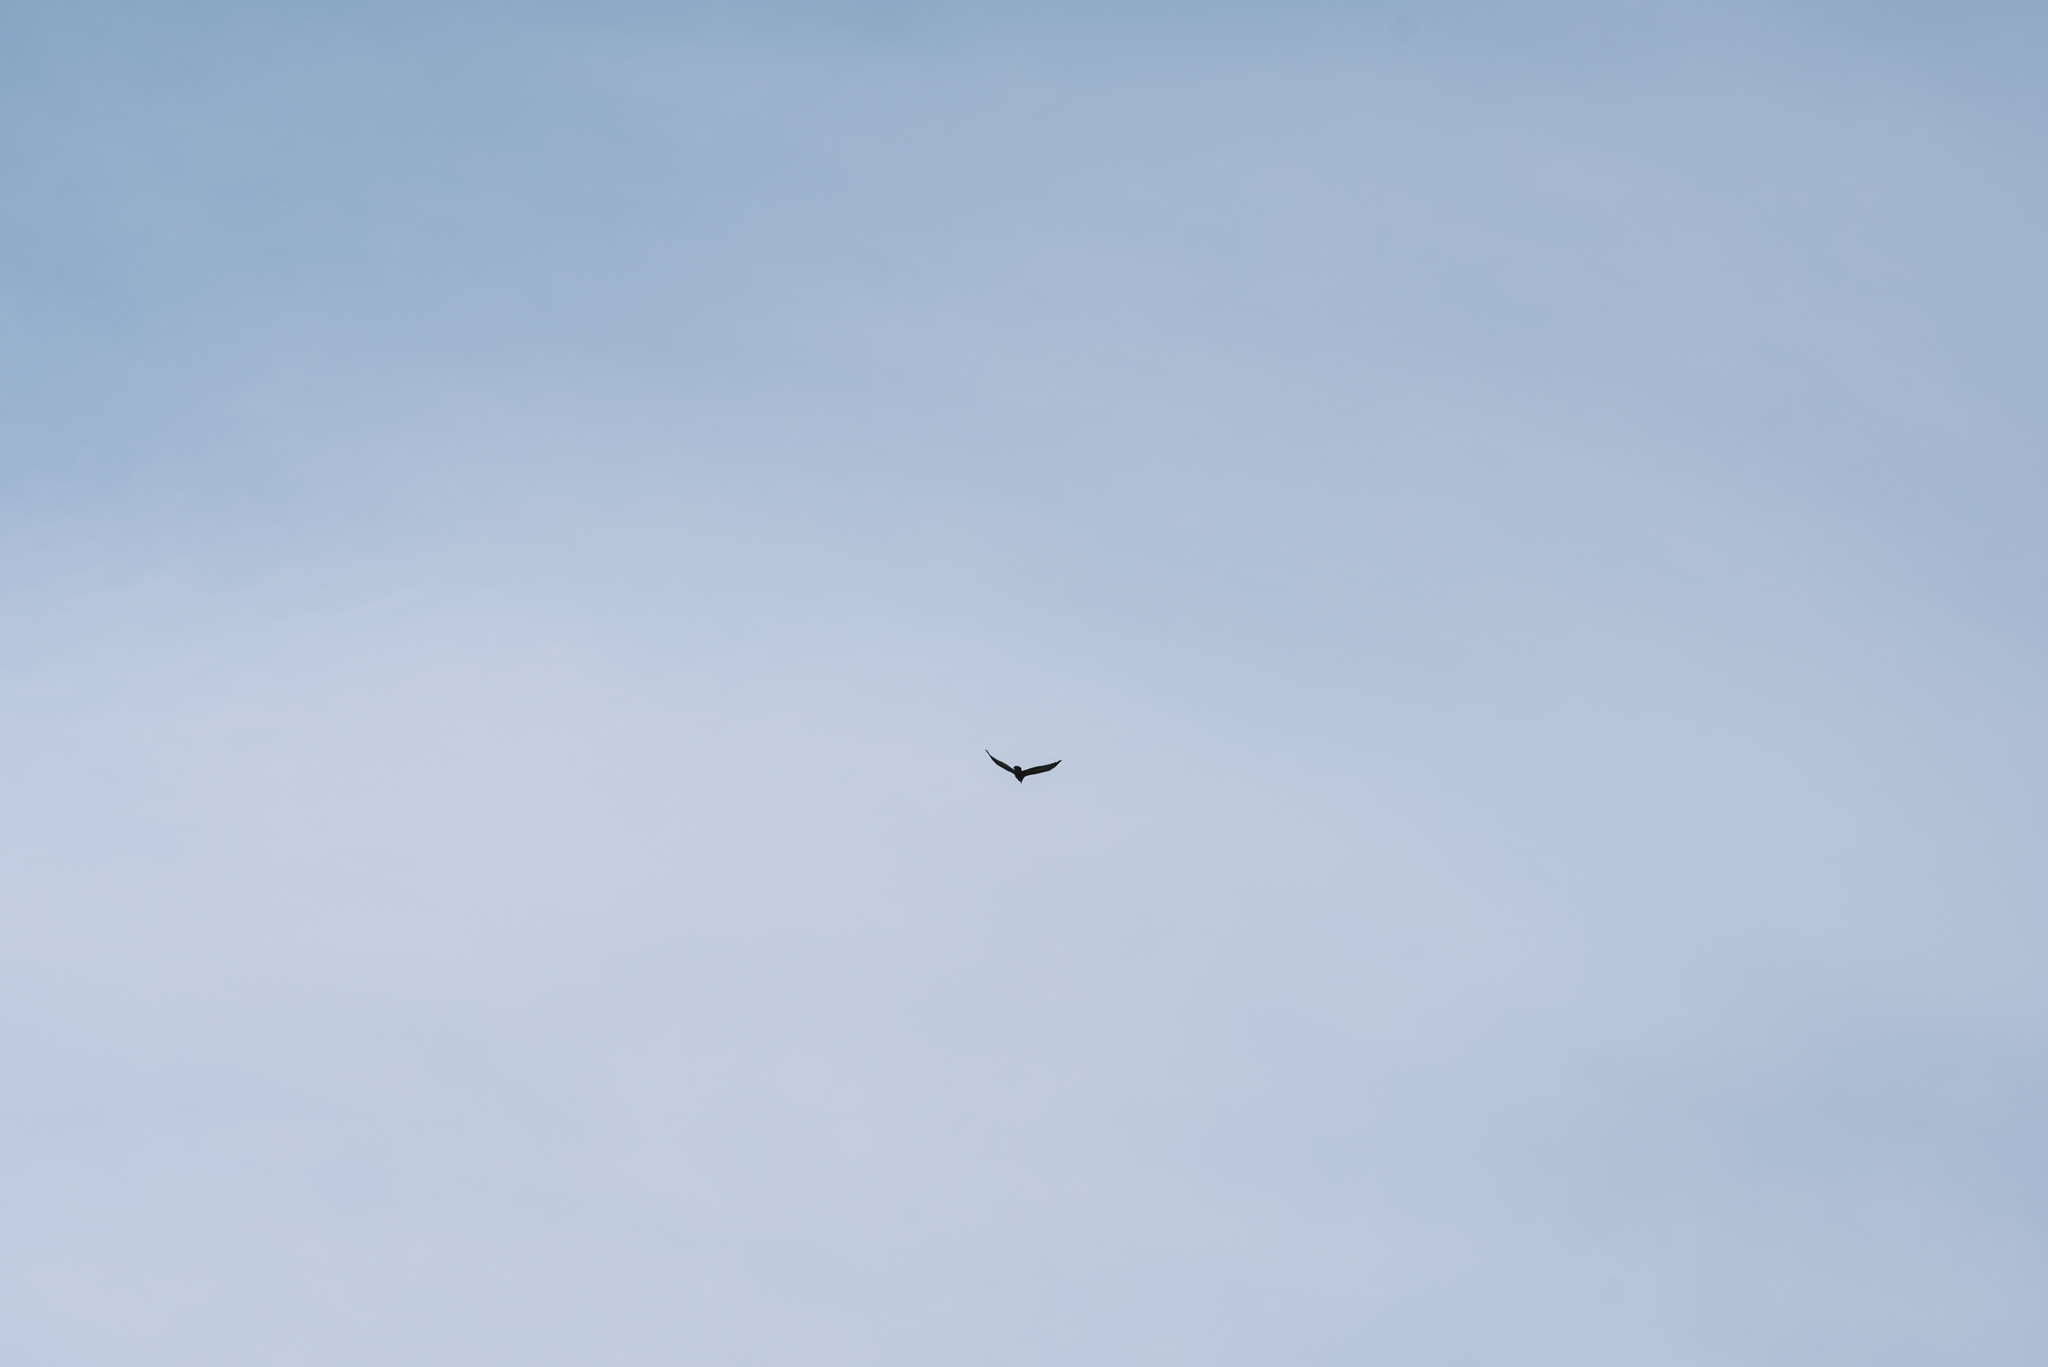 bird flying in sky